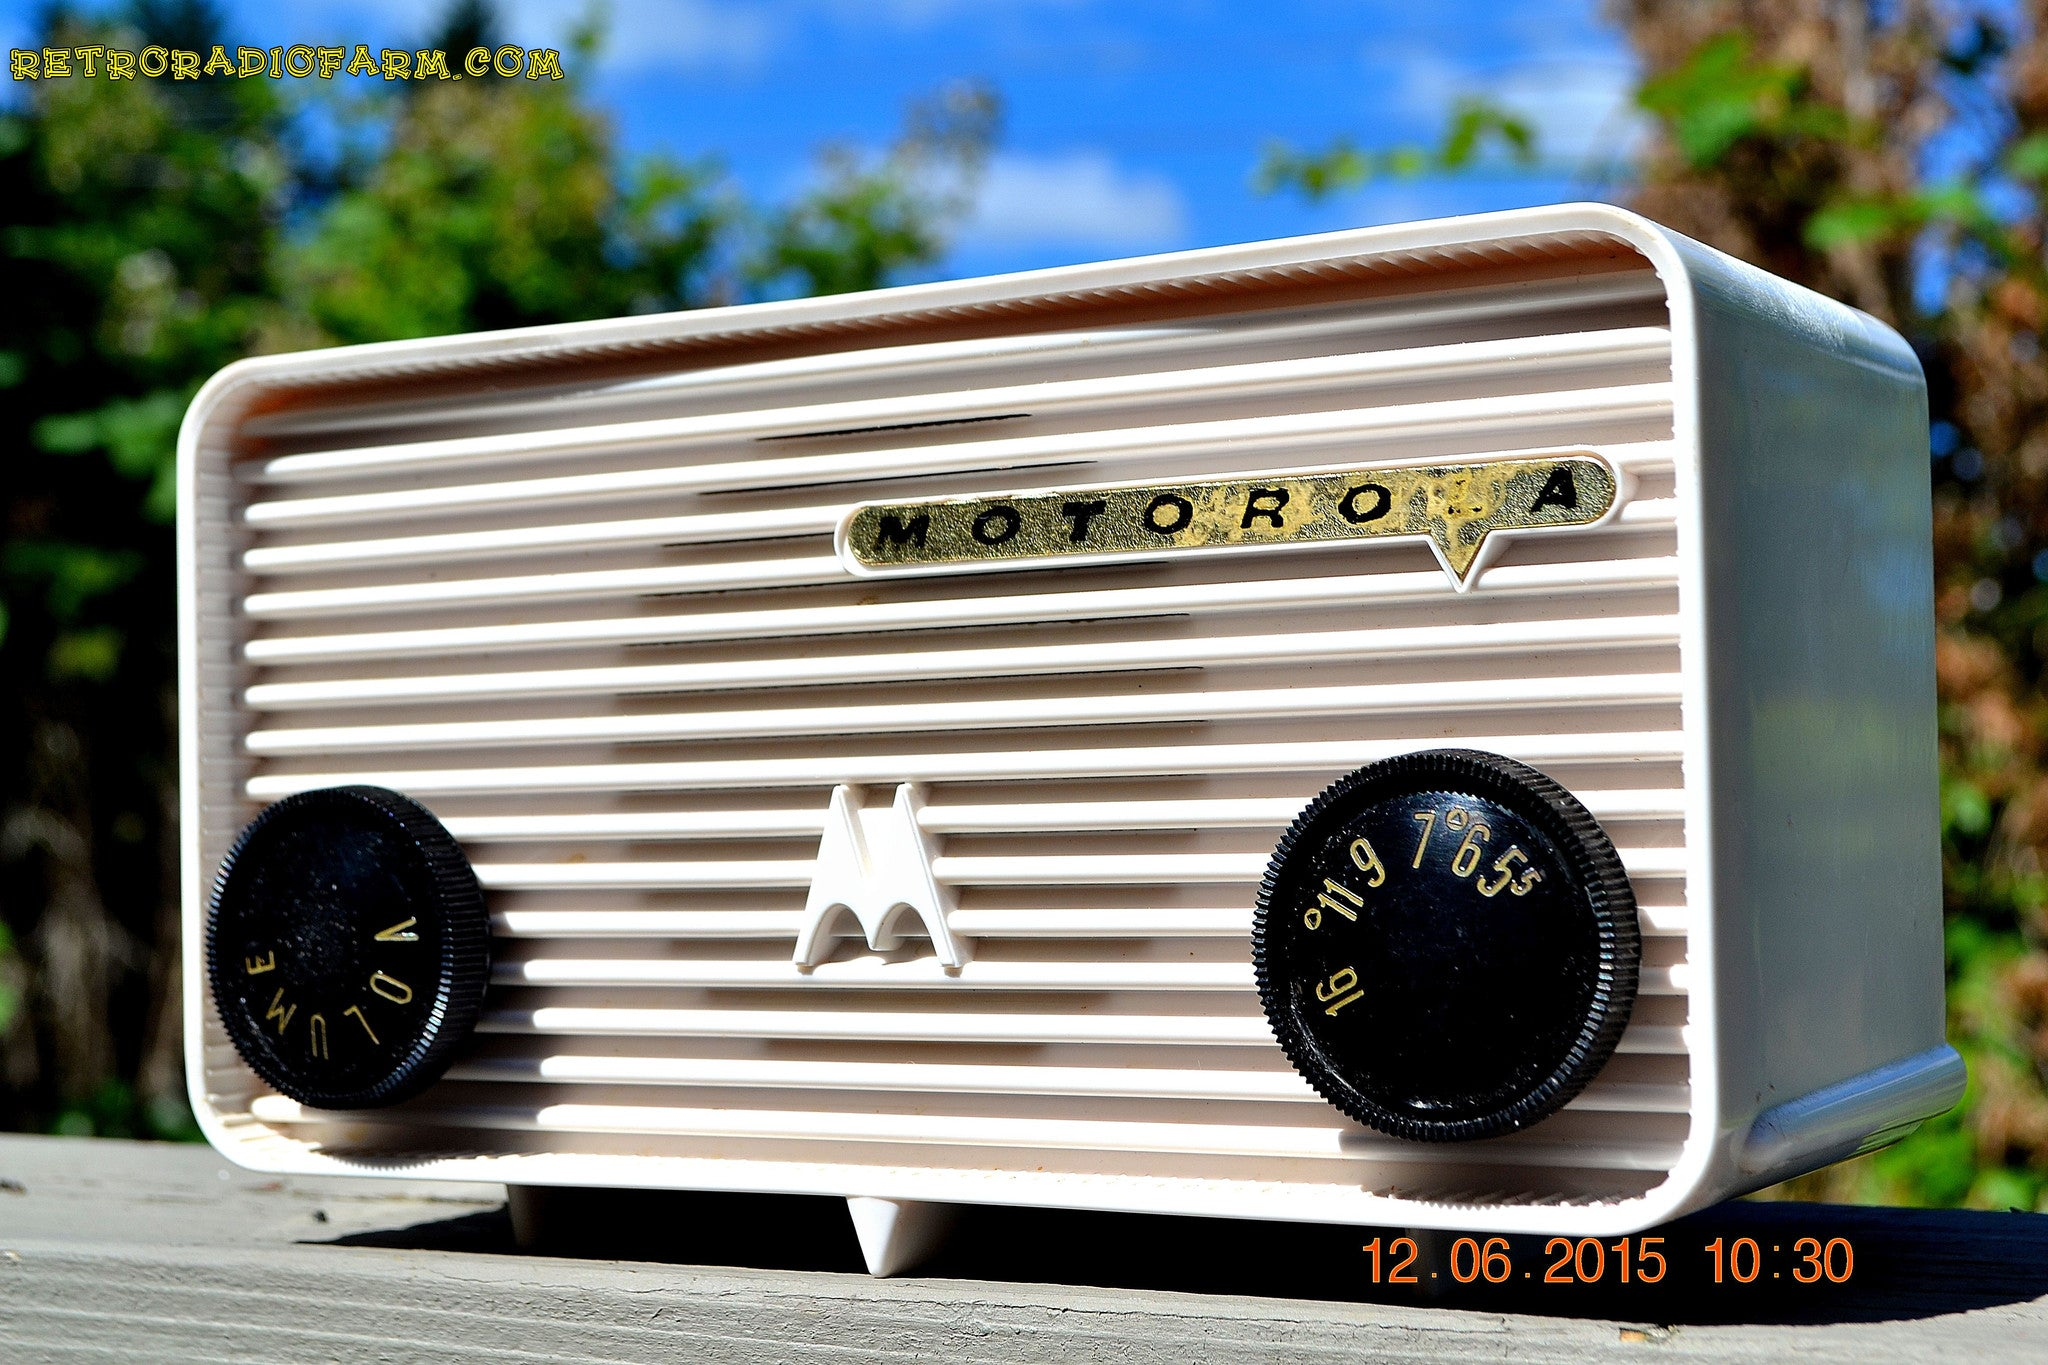 SOLD! - Jan 23, 2016 - BLUETOOTH MP3 READY - ALPINE WHITE Retro Jetsons 1957 Motorola Model 57A Tube AM Radio Works! - [product_type} - Motorola - Retro Radio Farm